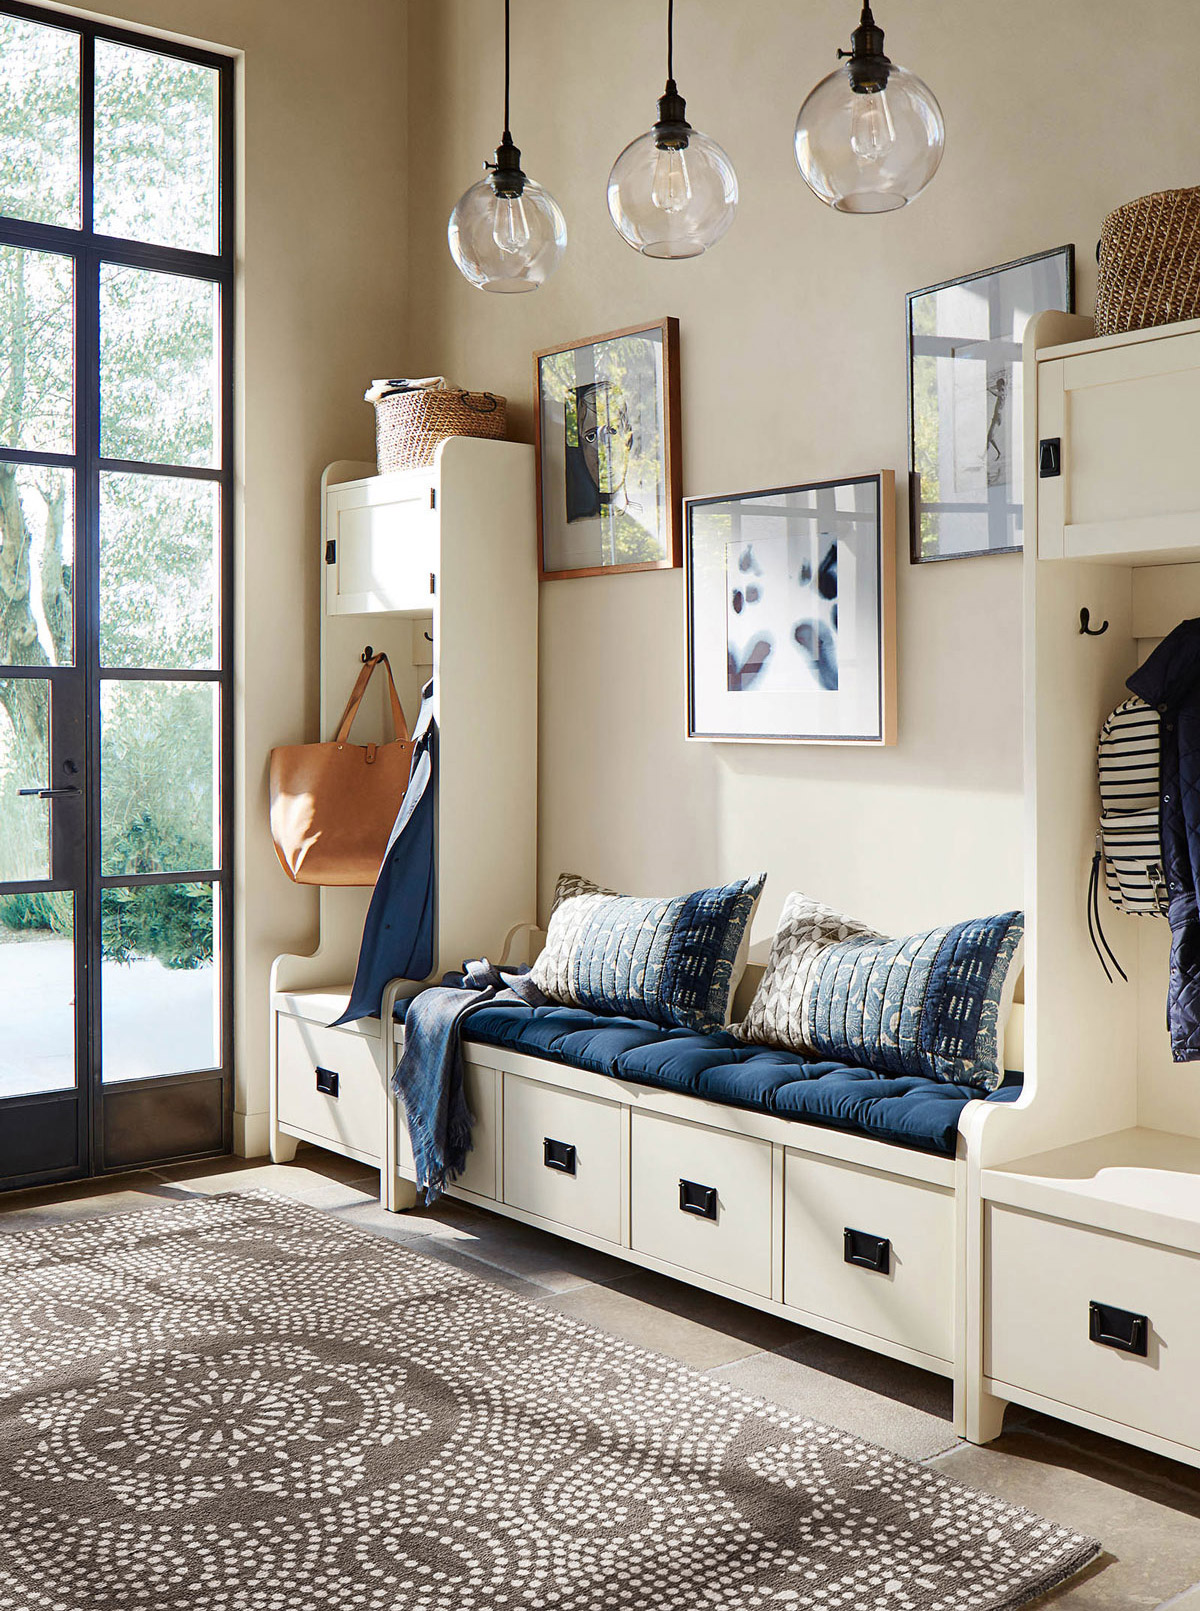 Entryway ideas - Mix utility and aesthetic